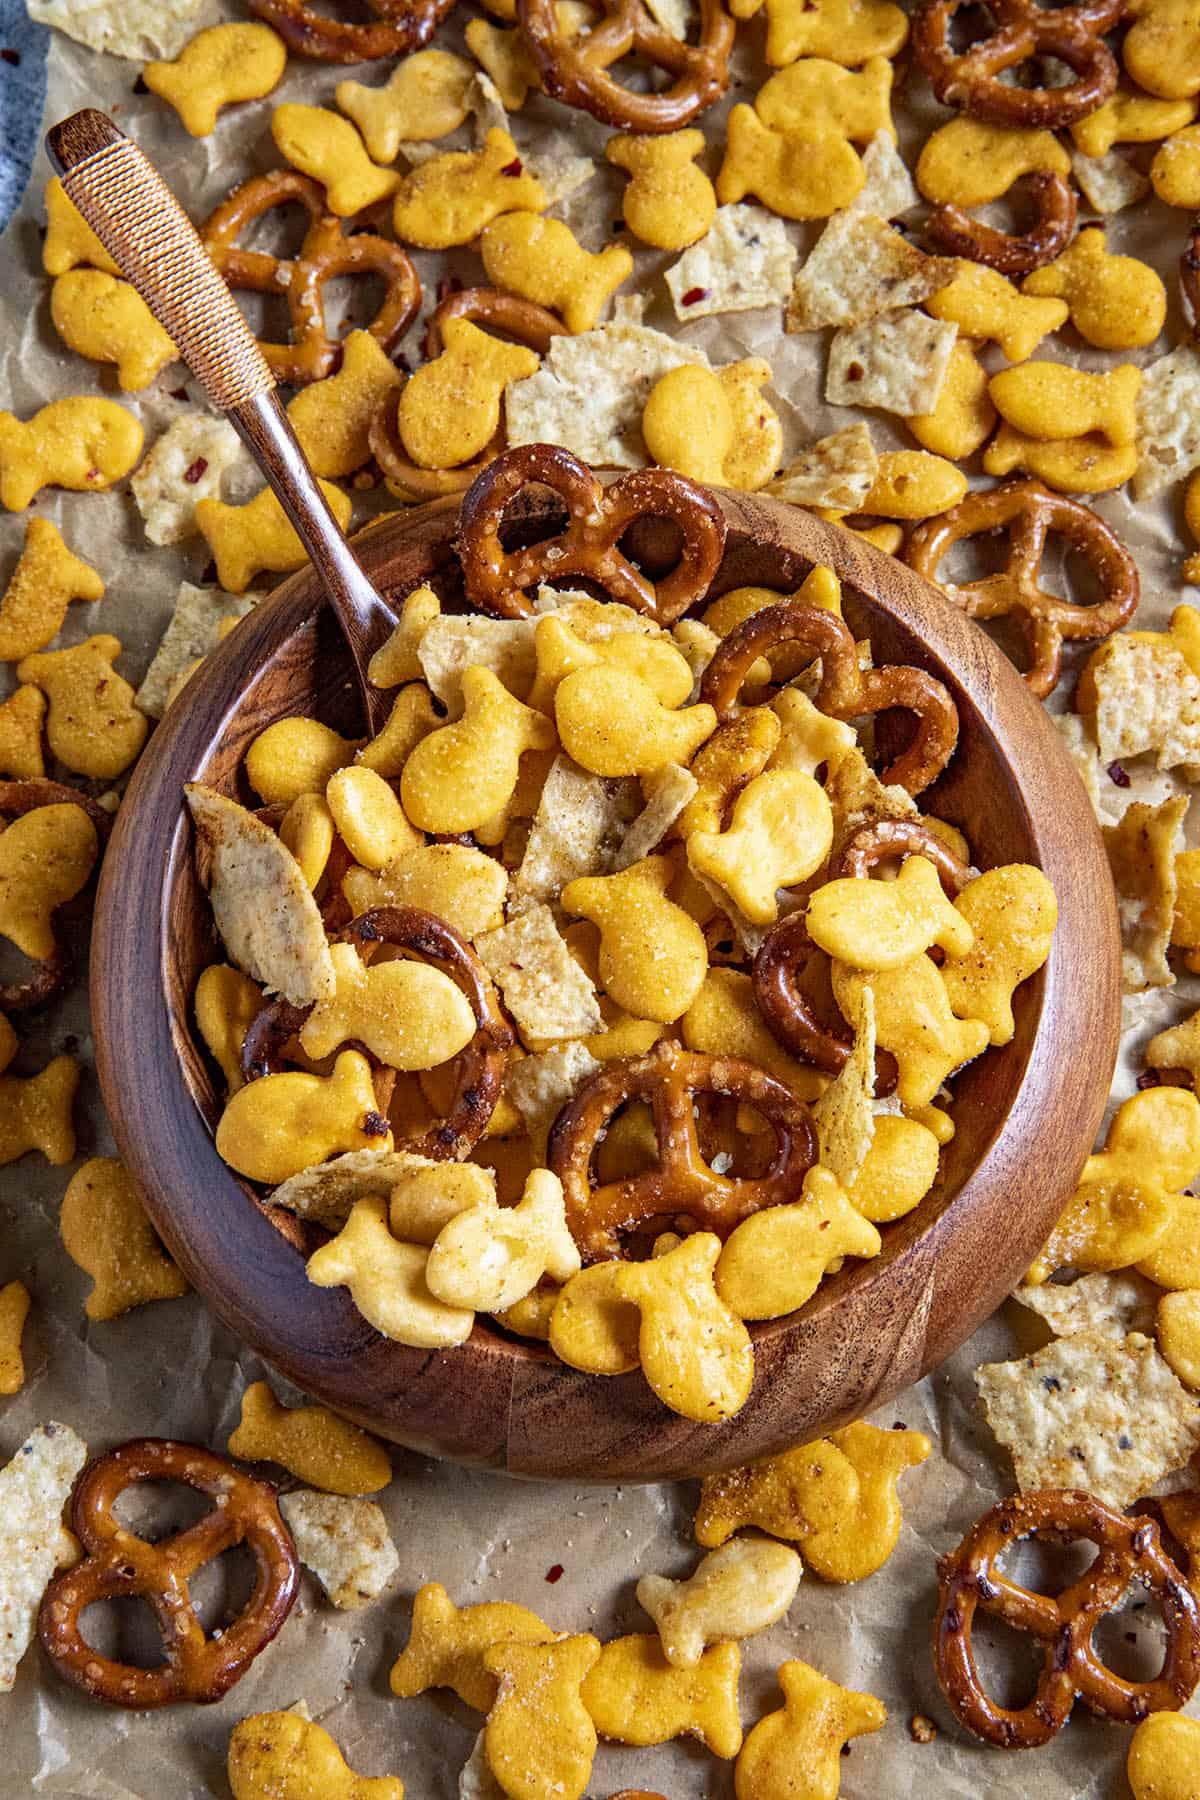 Homemade Spicy Snack Mix in a bowl for serving